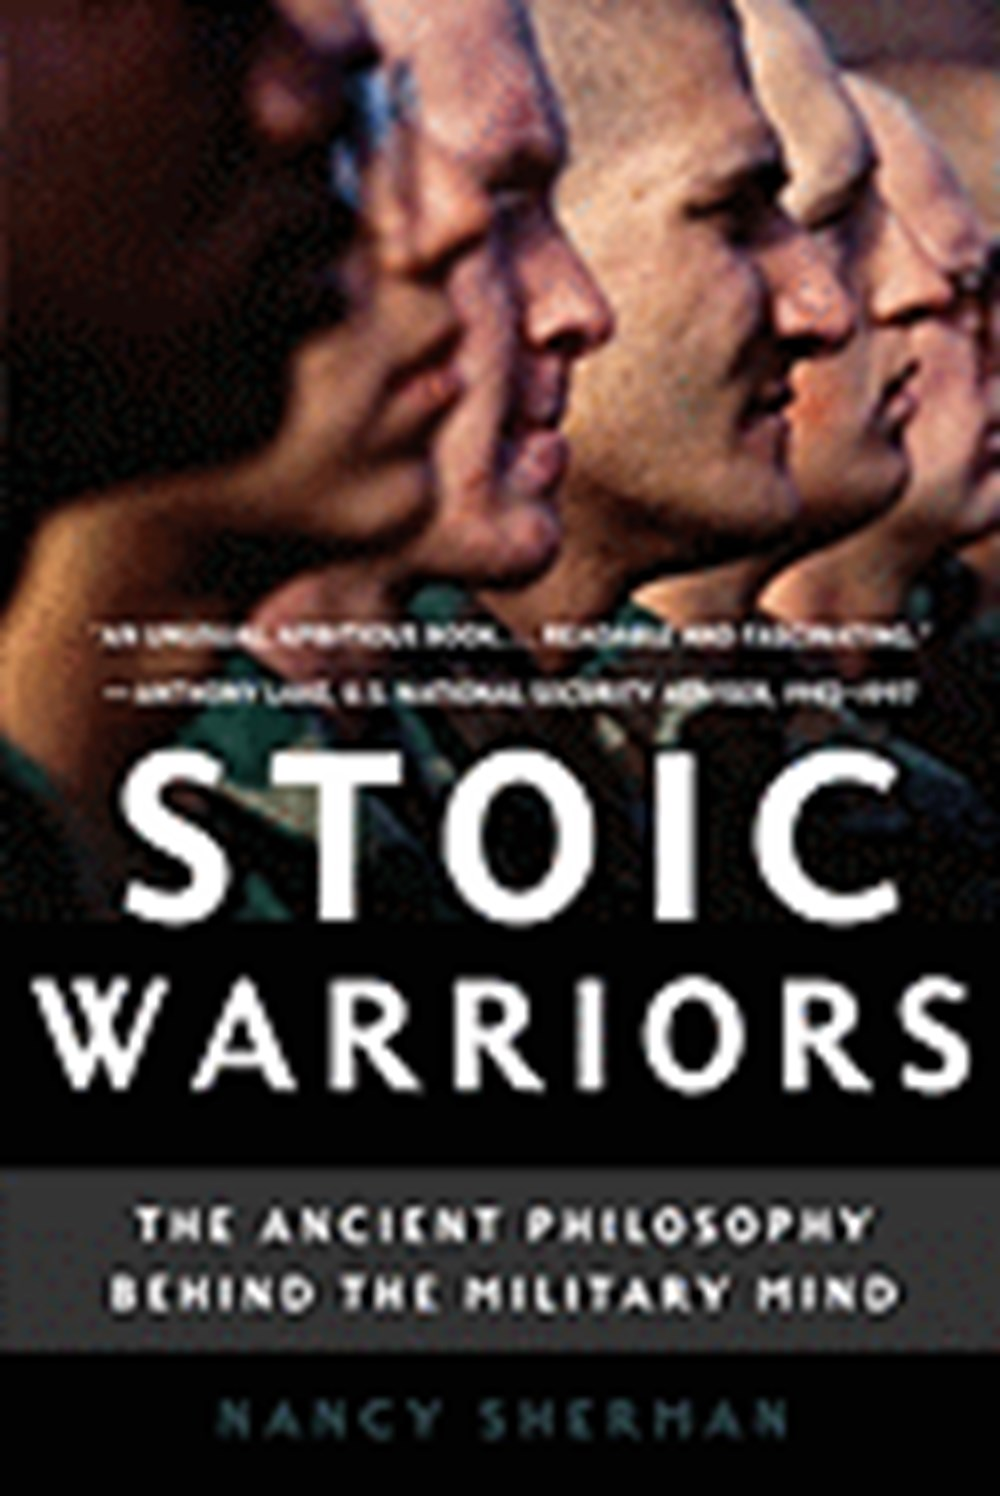 Stoic Warriors The Ancient Philosophy Behind the Military Mind